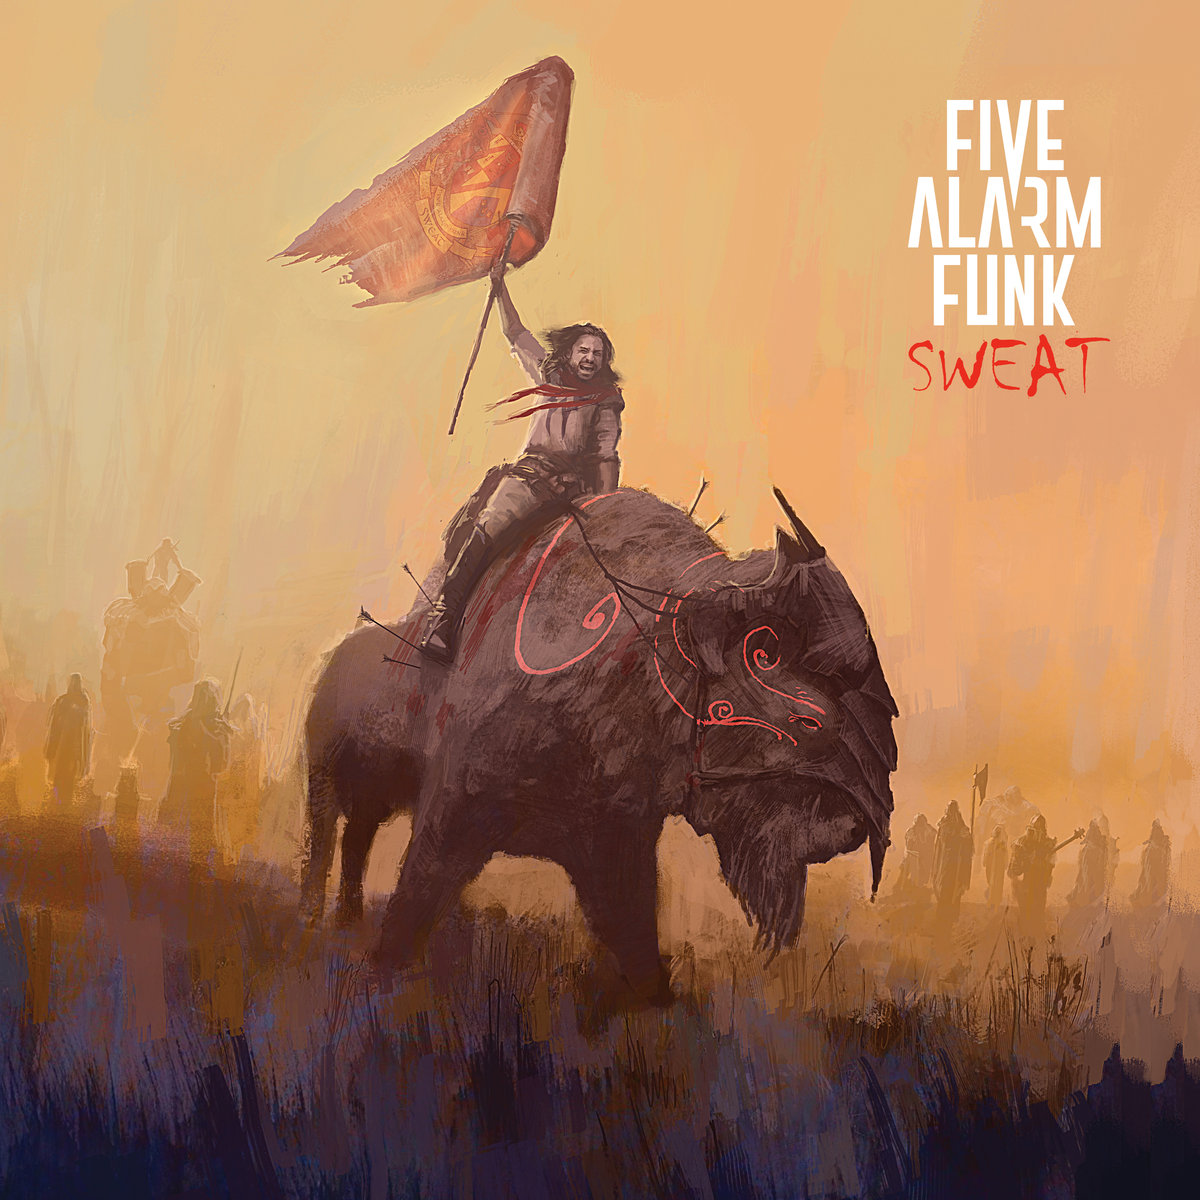 Five Alarm Funk -Sweat  Release date :March 3, 2017  Credit :Producer, Engineer, Mixer, Keyboards